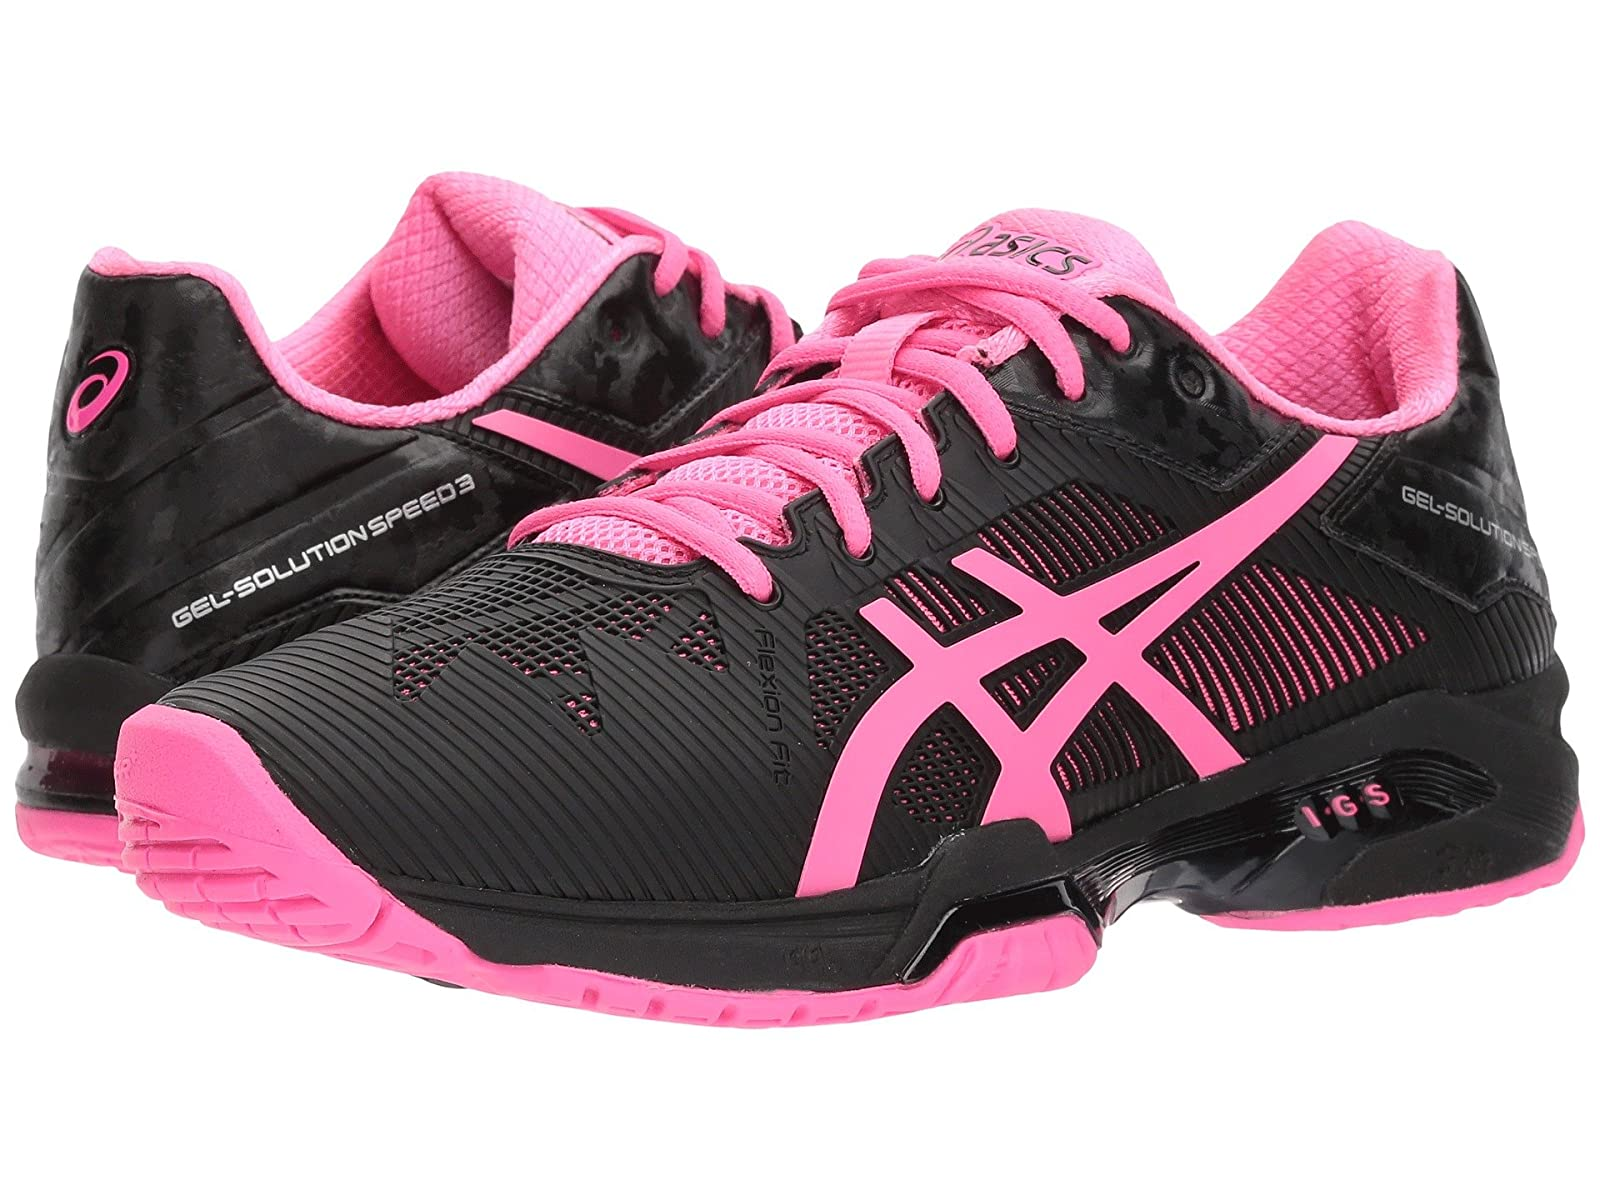 ASICS Gel-Solution® Speed 3Atmospheric grades have affordable shoes